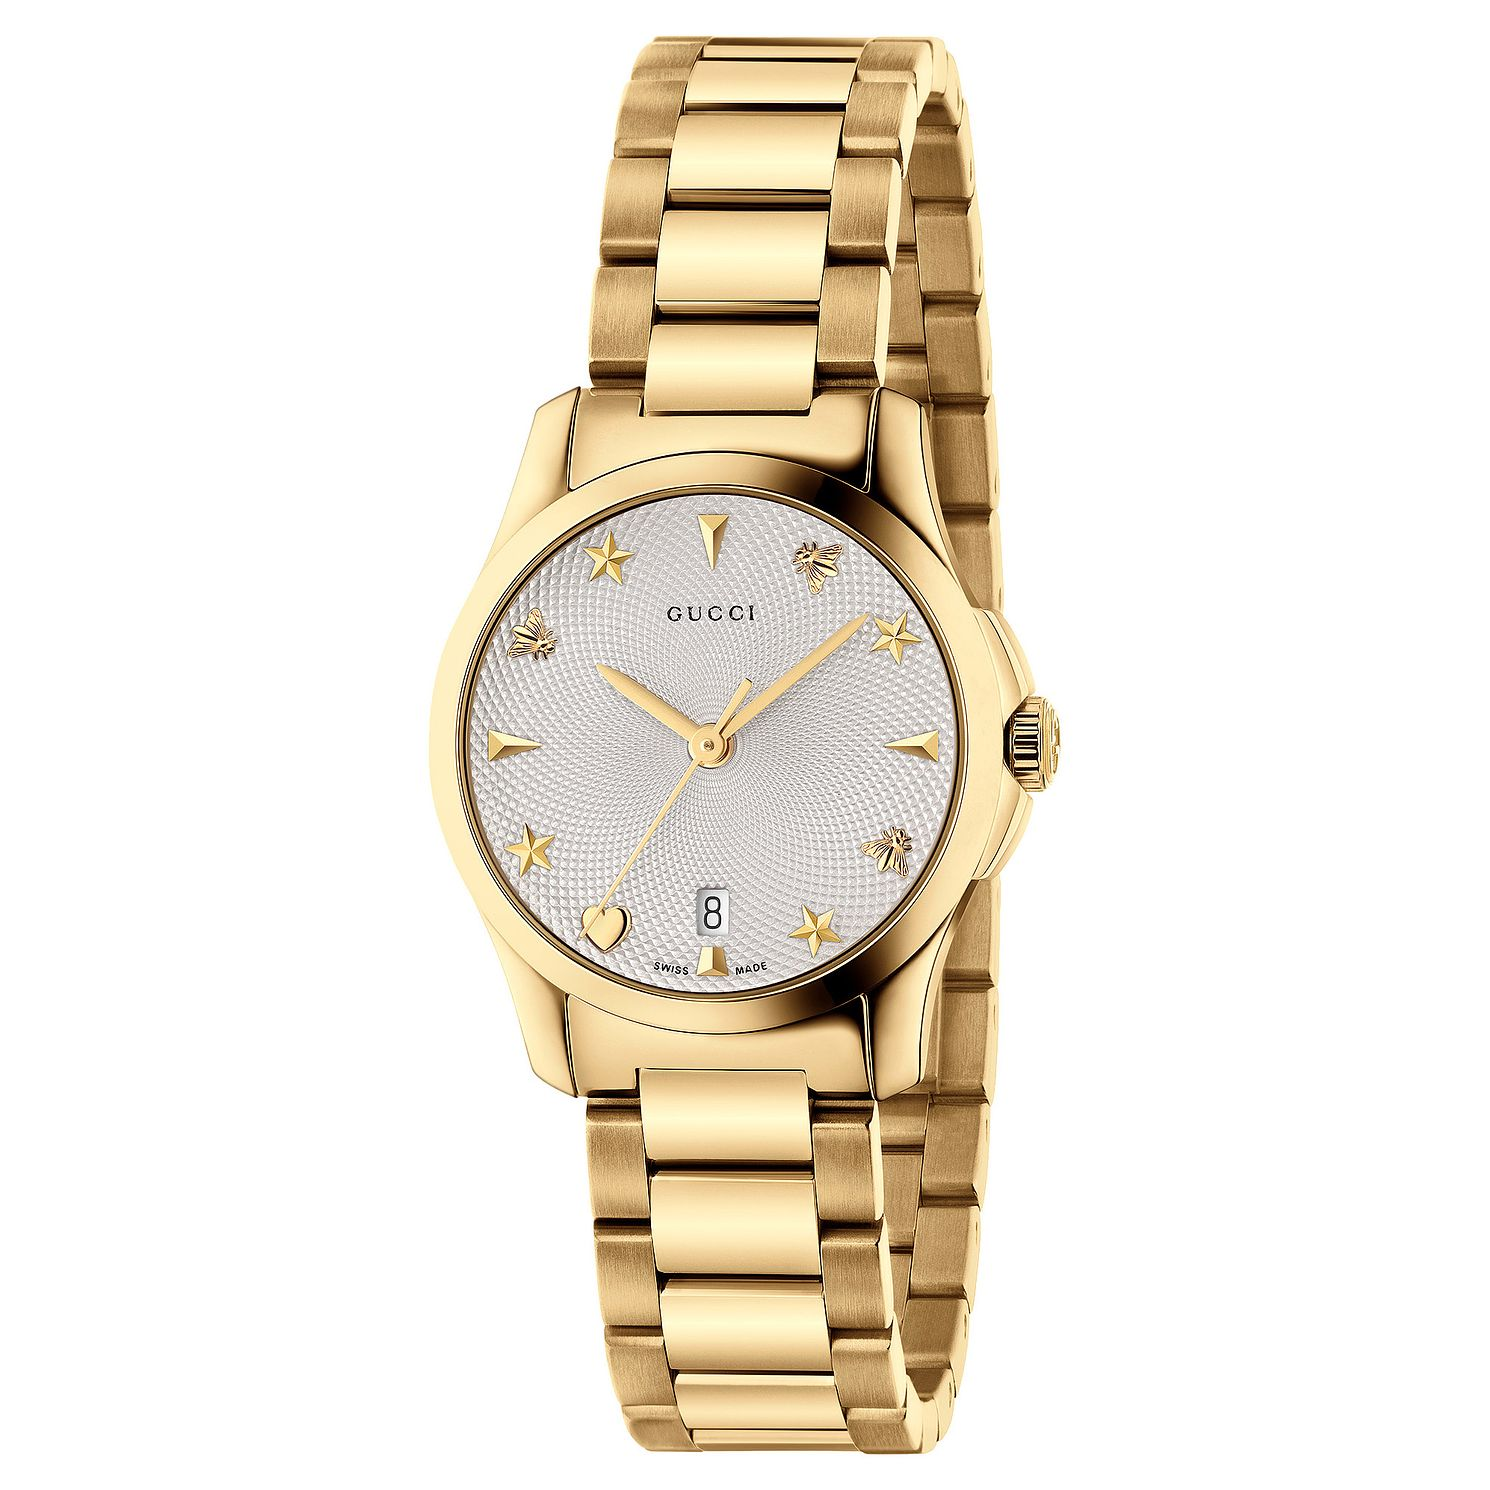 Gucci G-Timeless Gold Tone Bracelet Watch - Product number 6382533